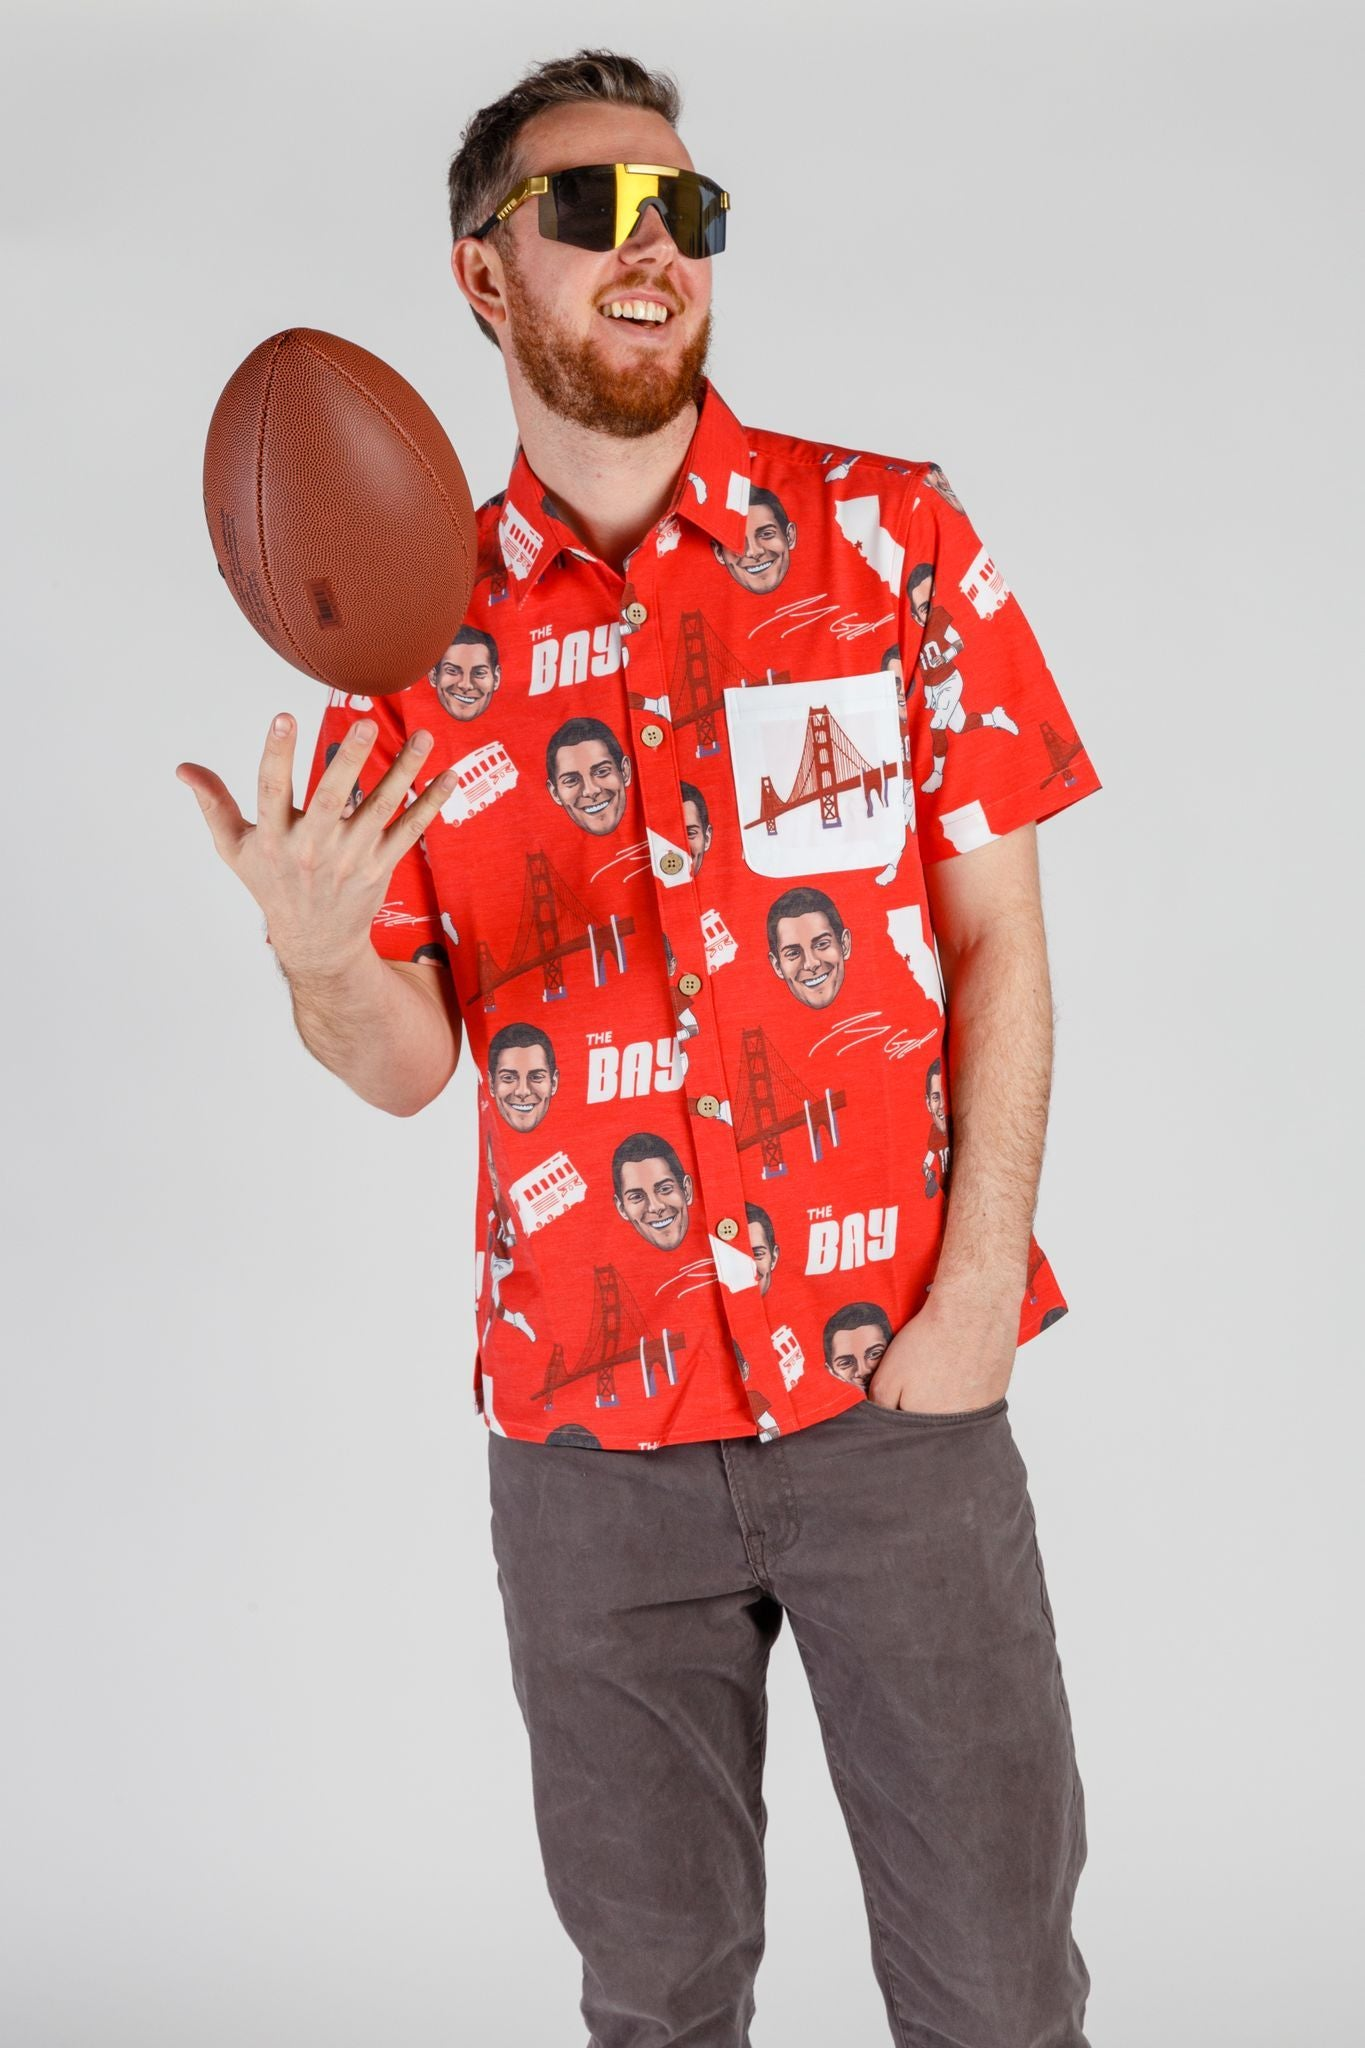 49ers Hawaiian Shirt with Beer Pocket